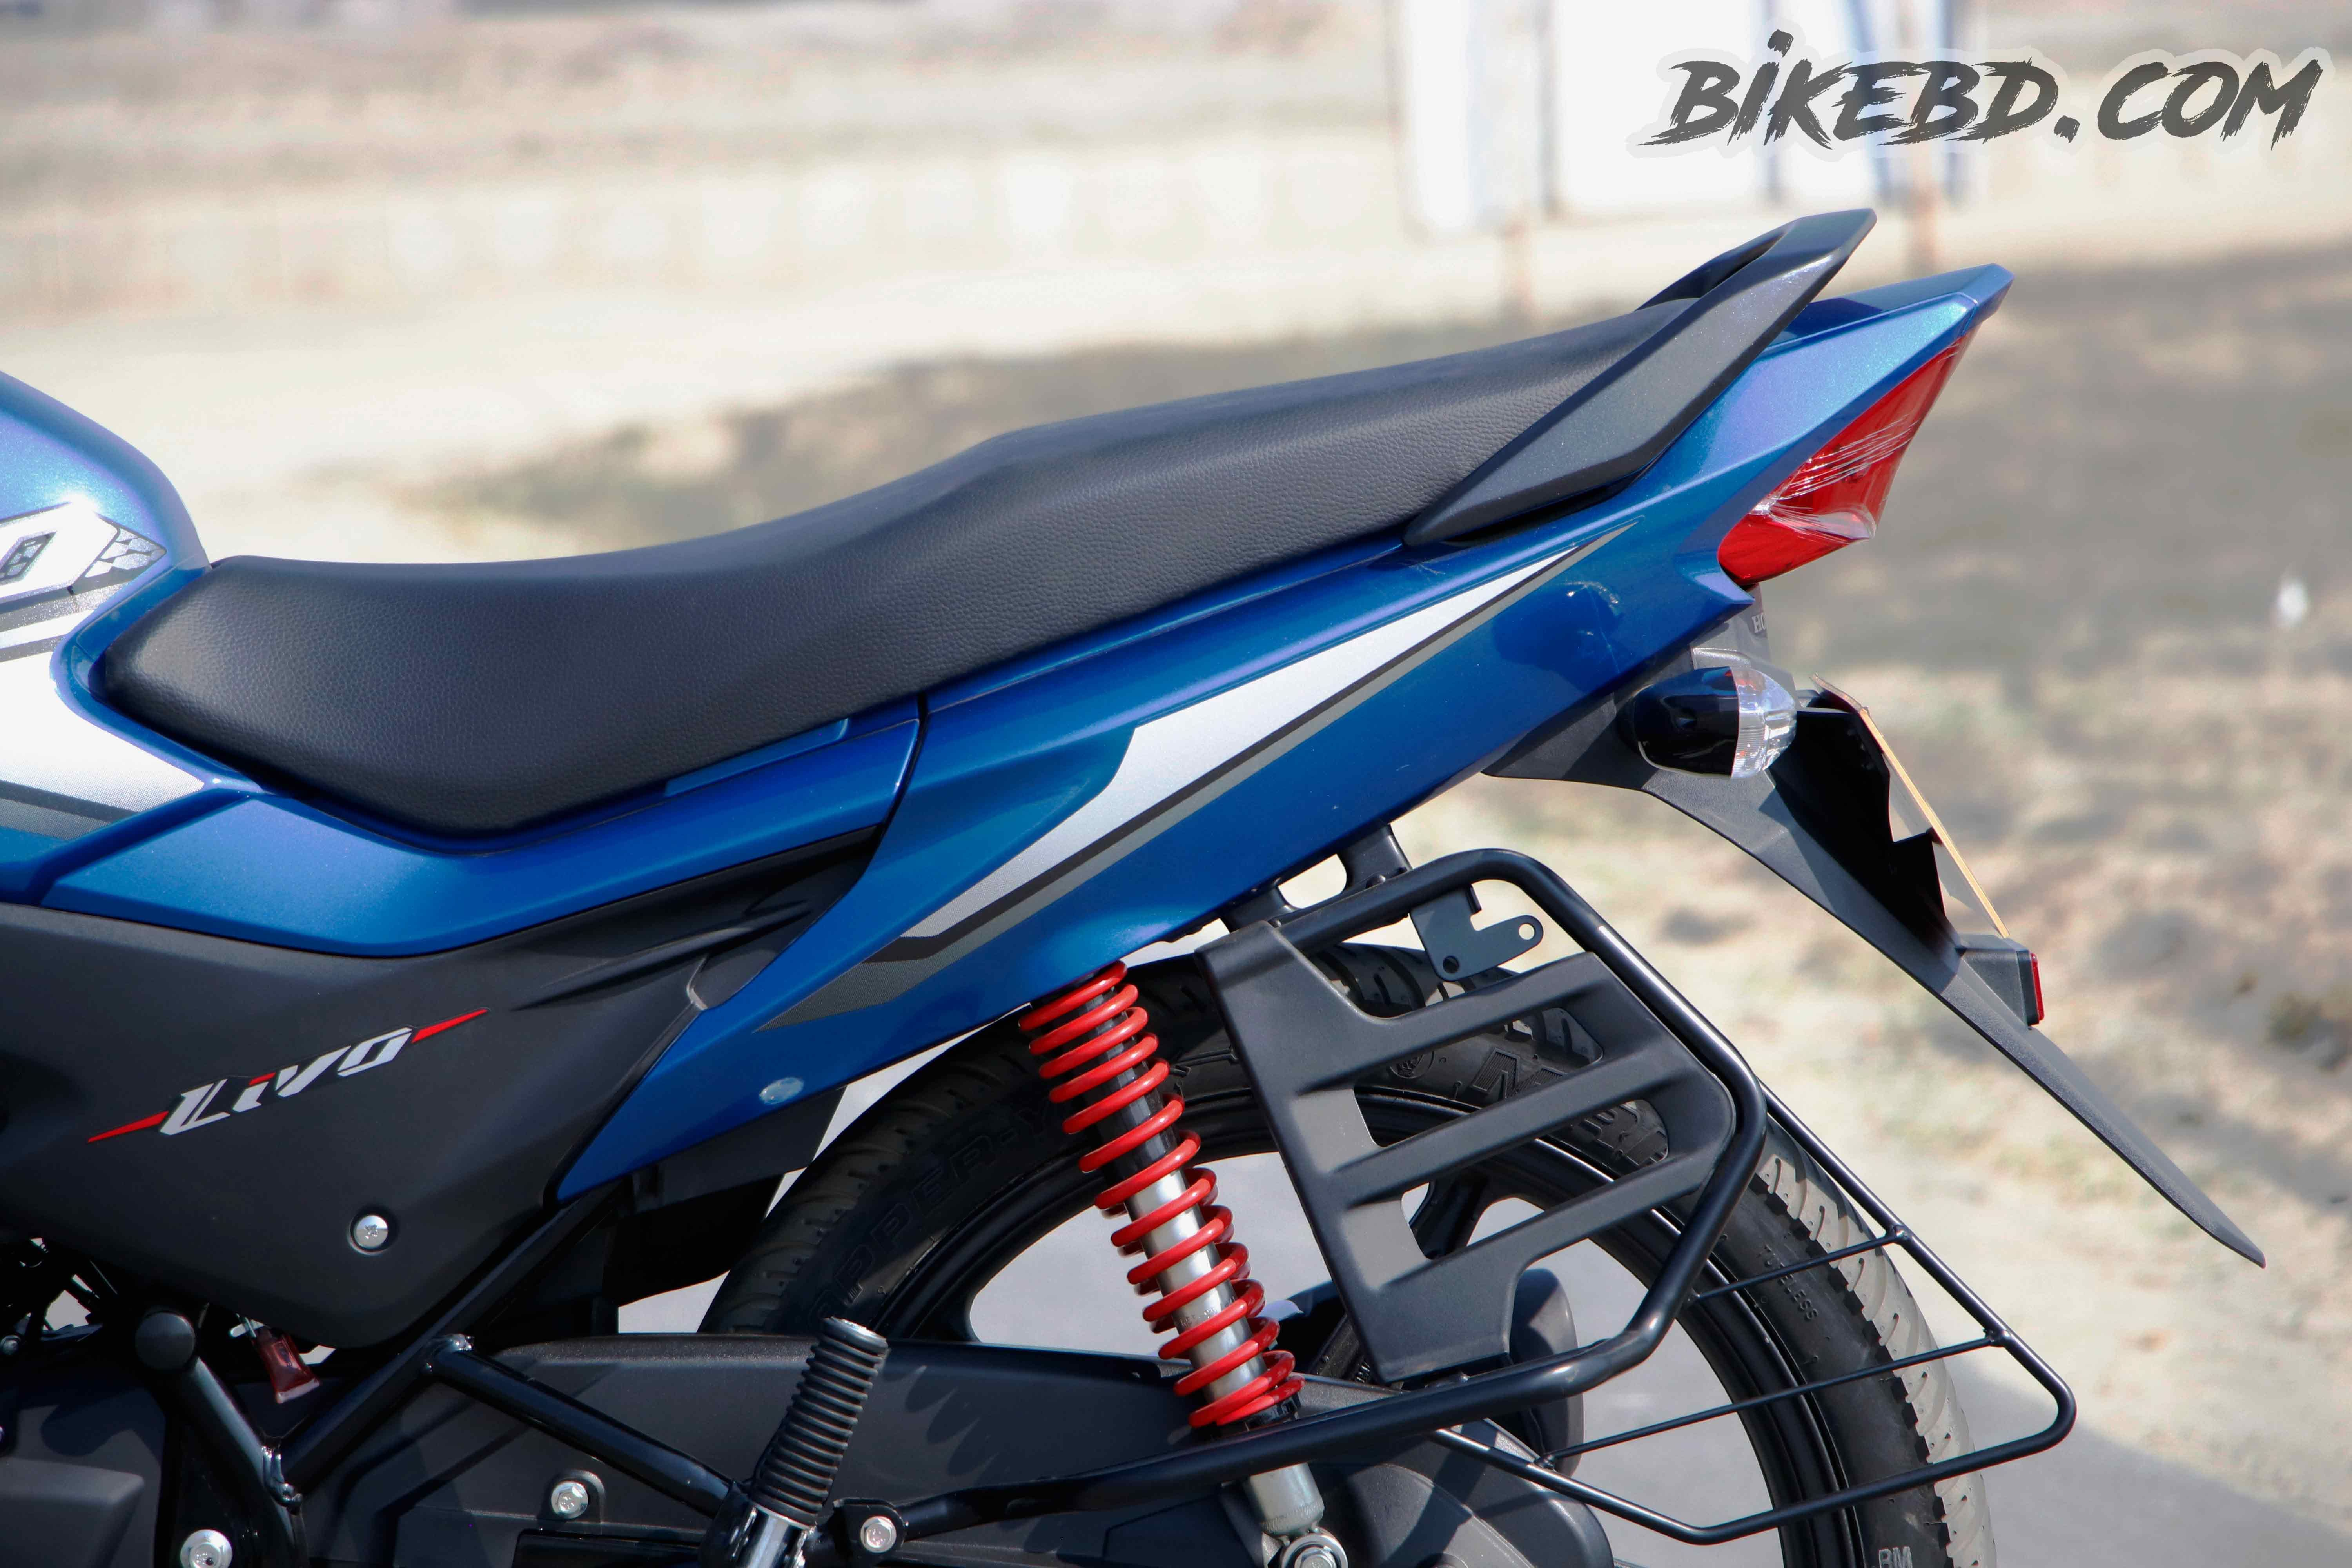 Honda Livo 2019 Is The Latest Bike From Bangladesh Honda Private